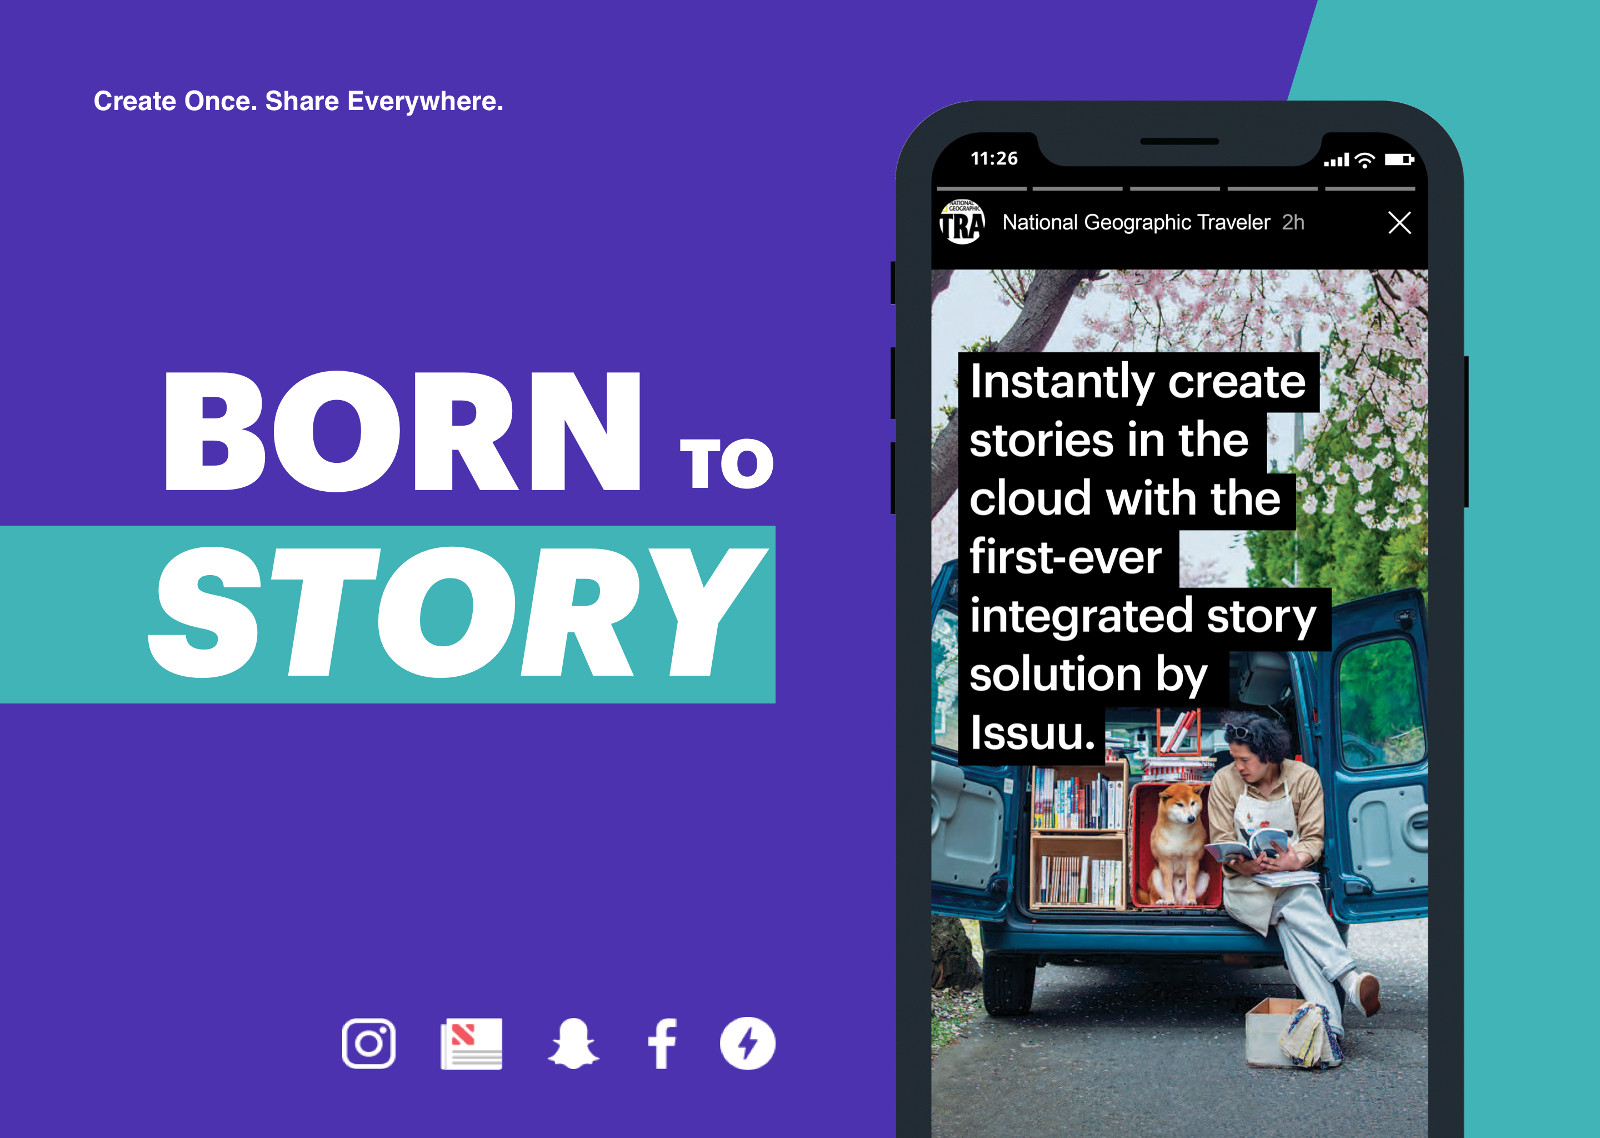 Born to Story